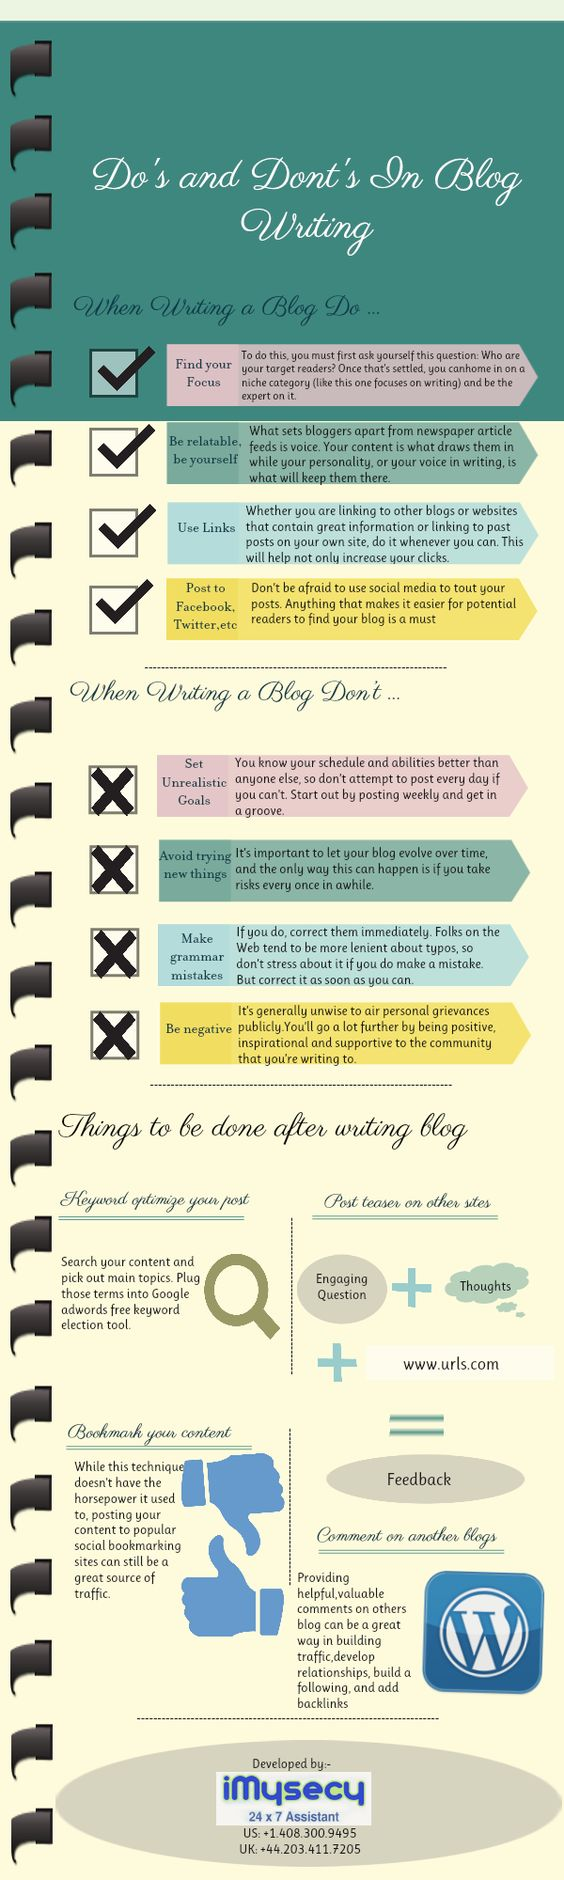 Do's and dont's in blog writing